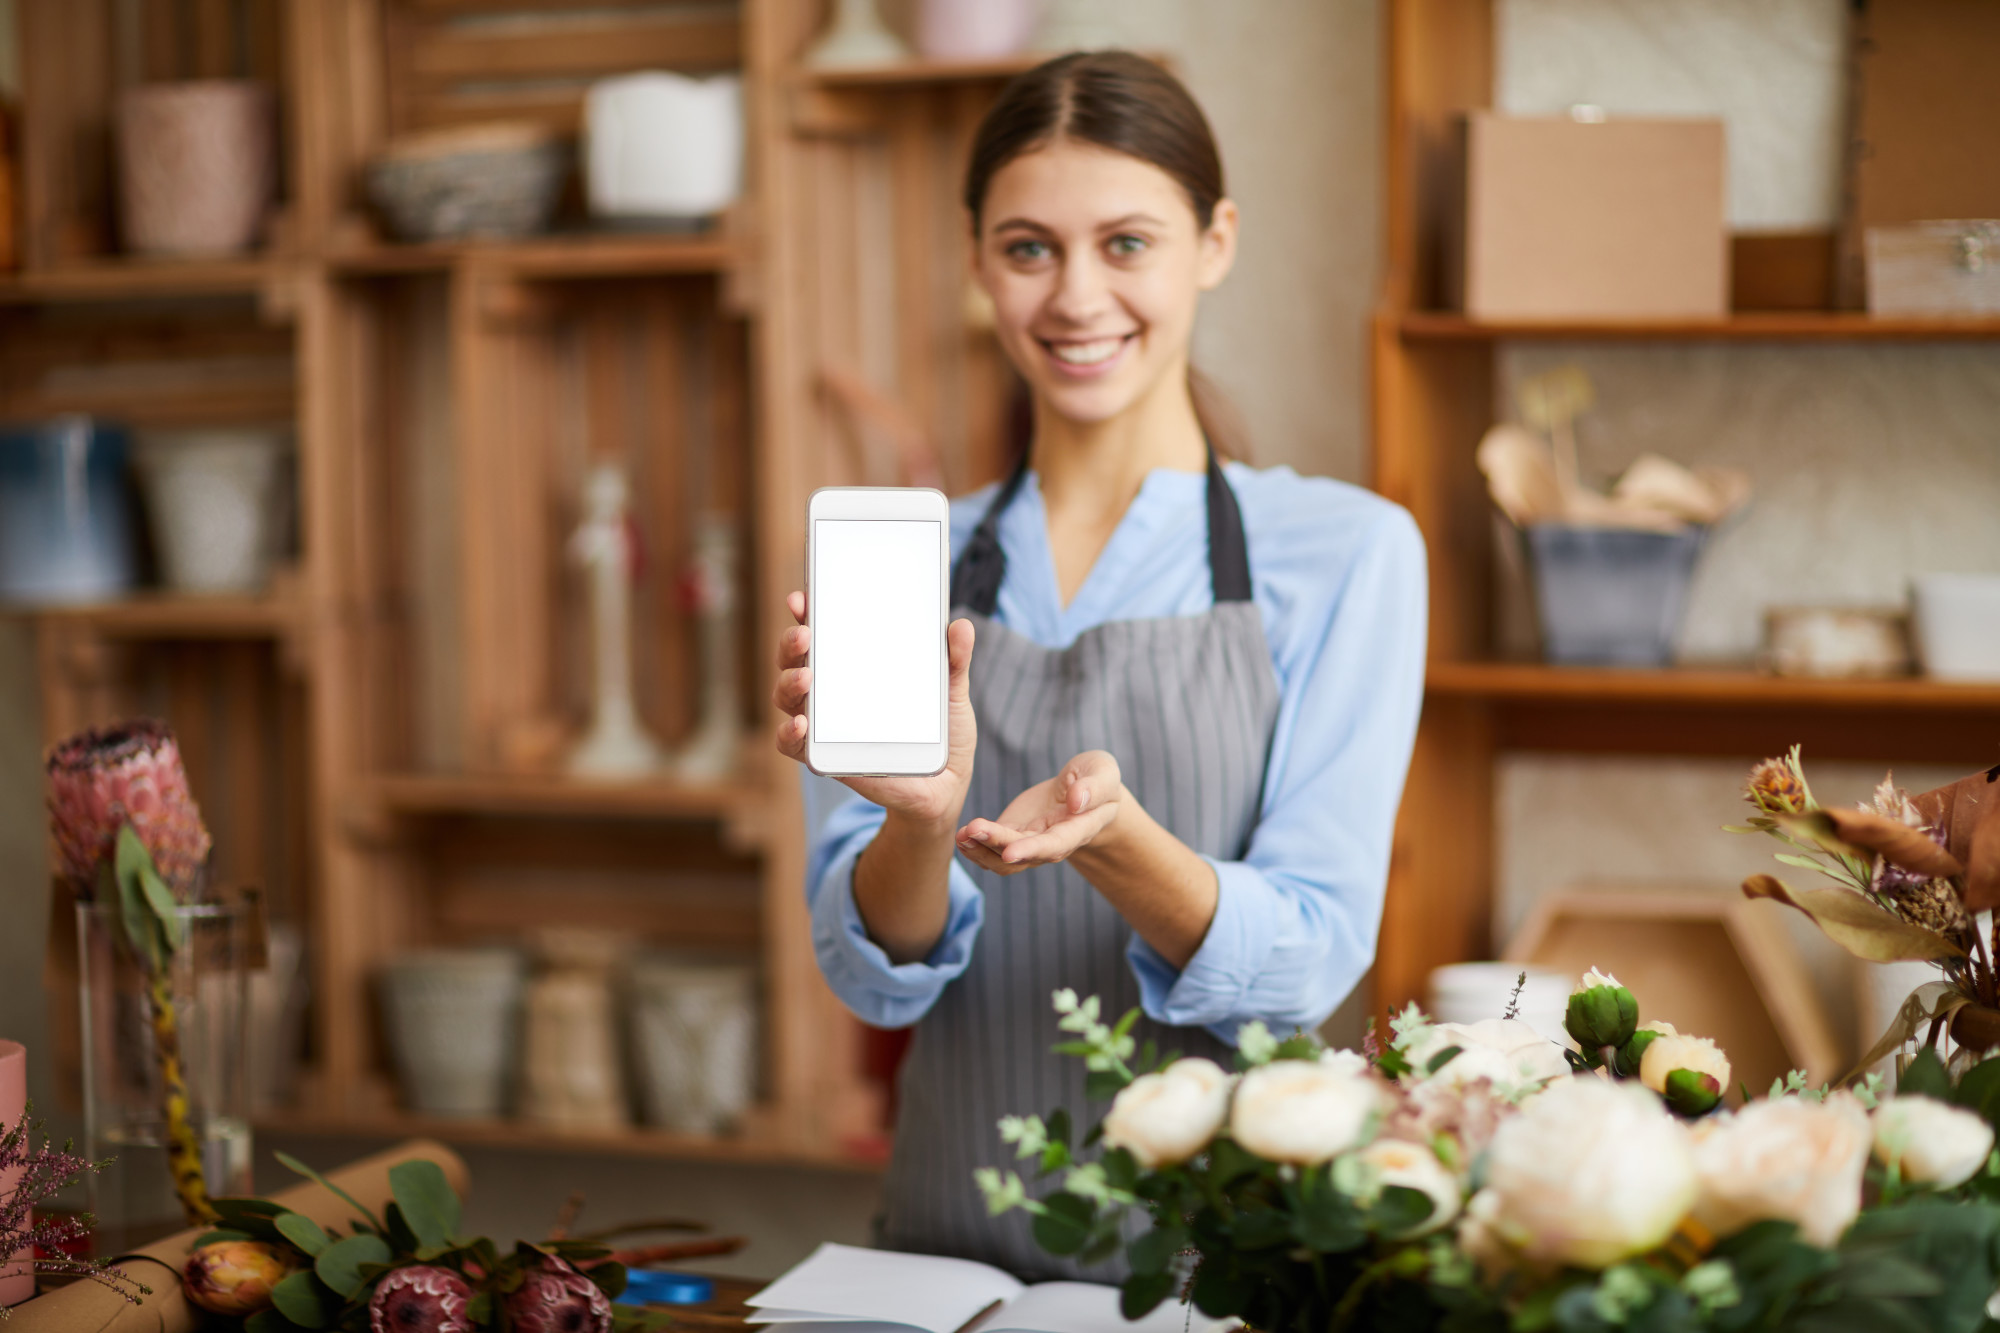 5 Reasons Your Company Should Create a Business App